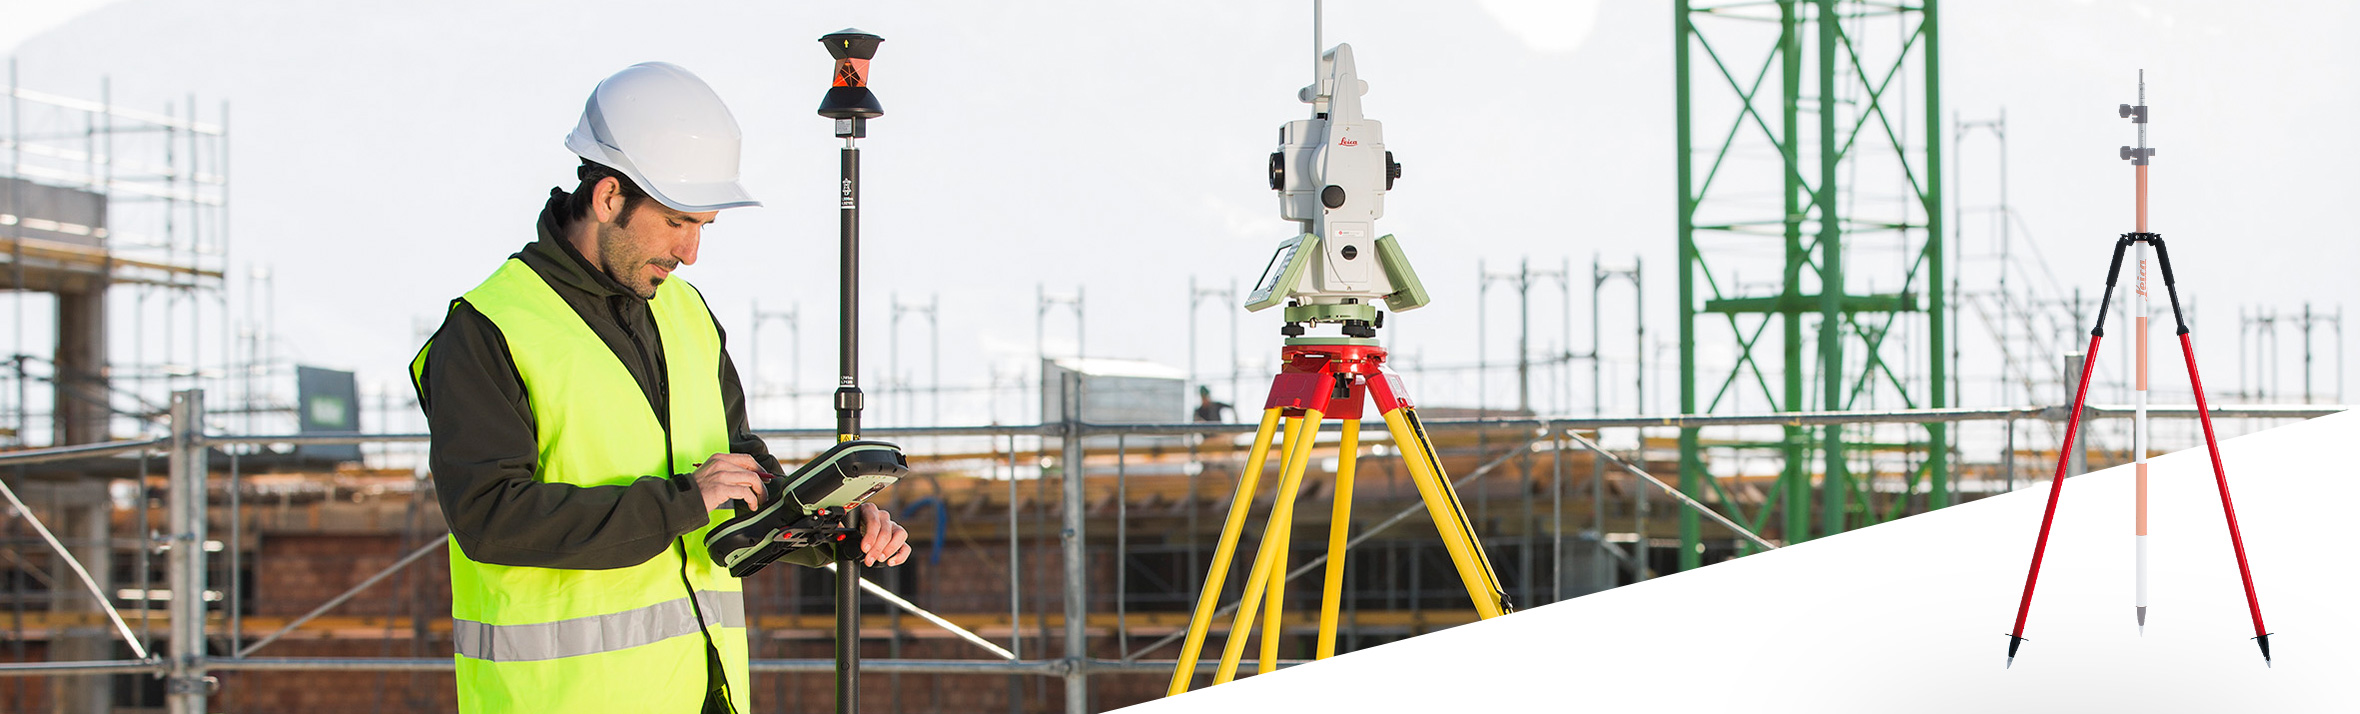 Leica Geosystems Accessories - Poles